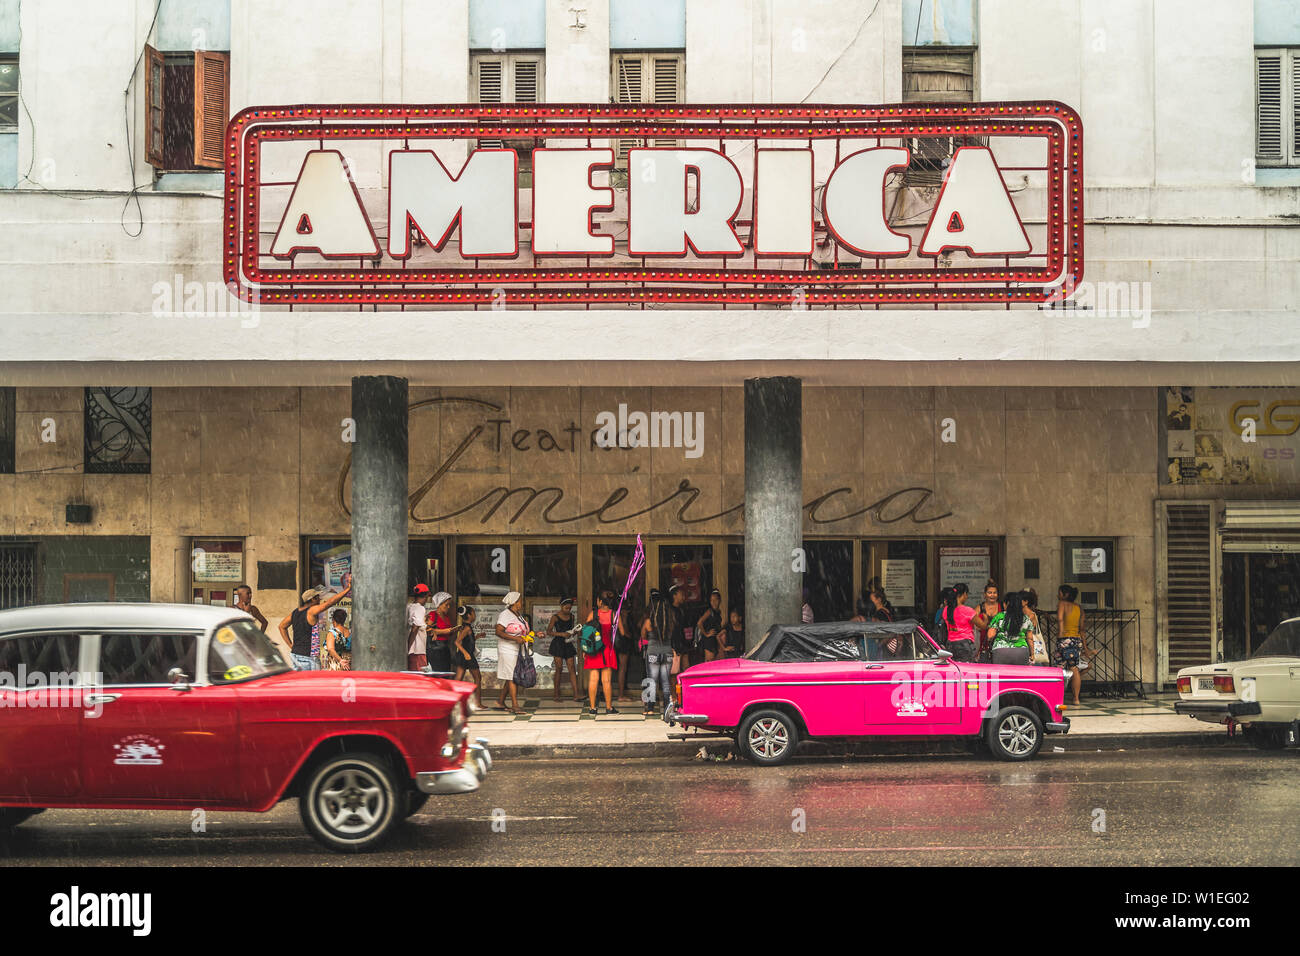 Pink and red vintage cars outside Teatro America in rain, La Habana (Havana), Cuba, West Indies, Caribbean, Central America - Stock Image